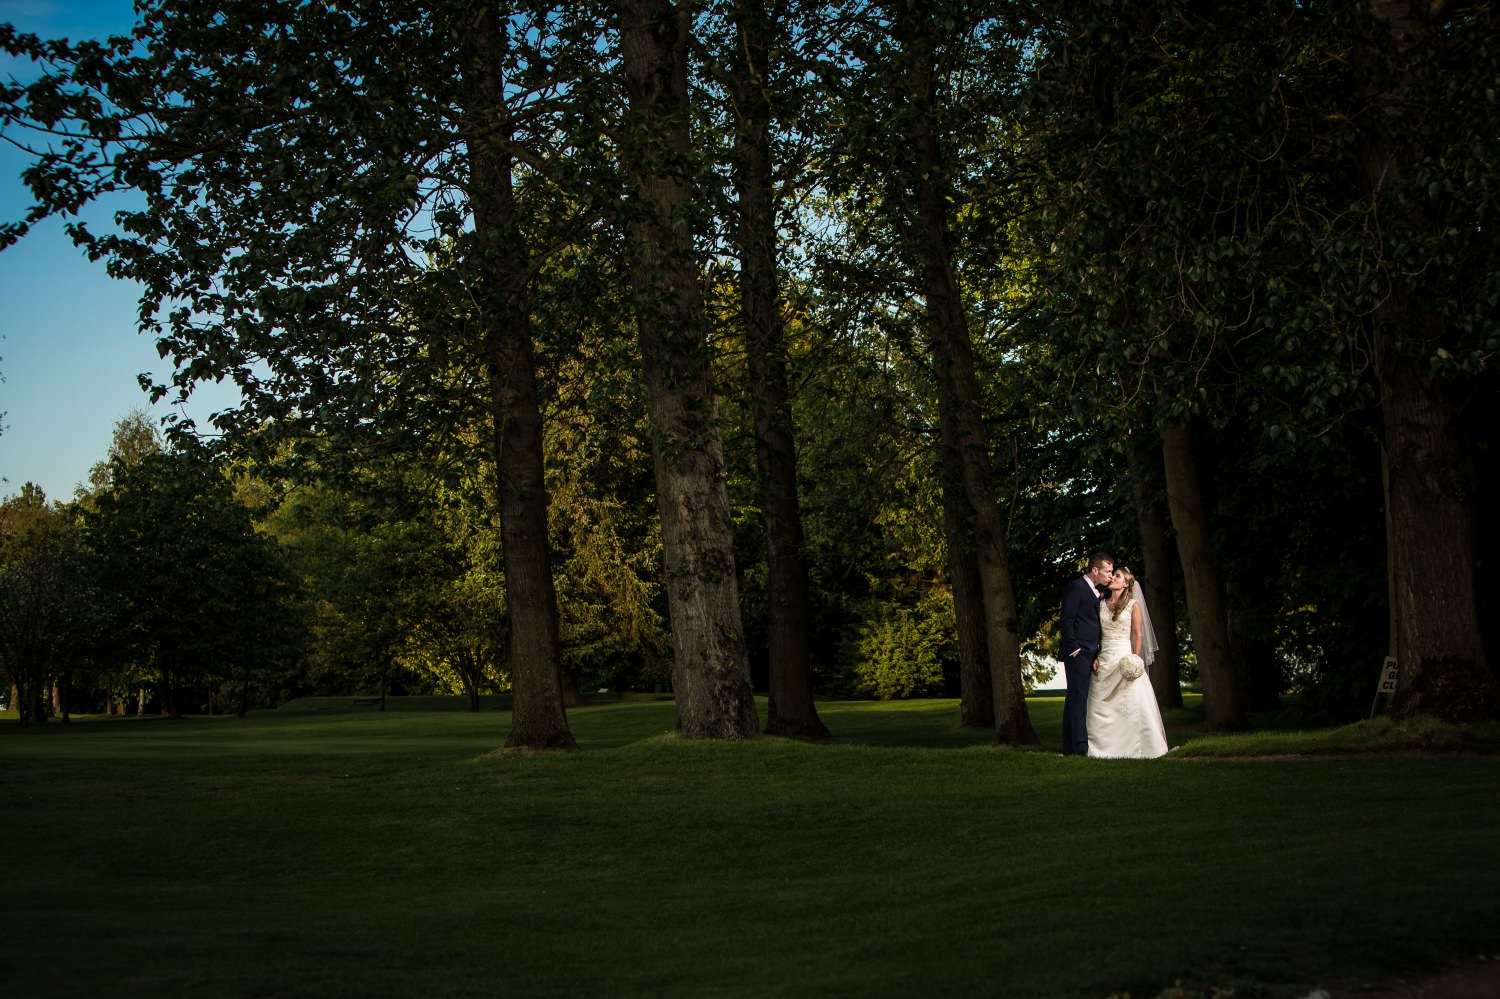 Photographs of a wedding couple at a wedding in Liverpool